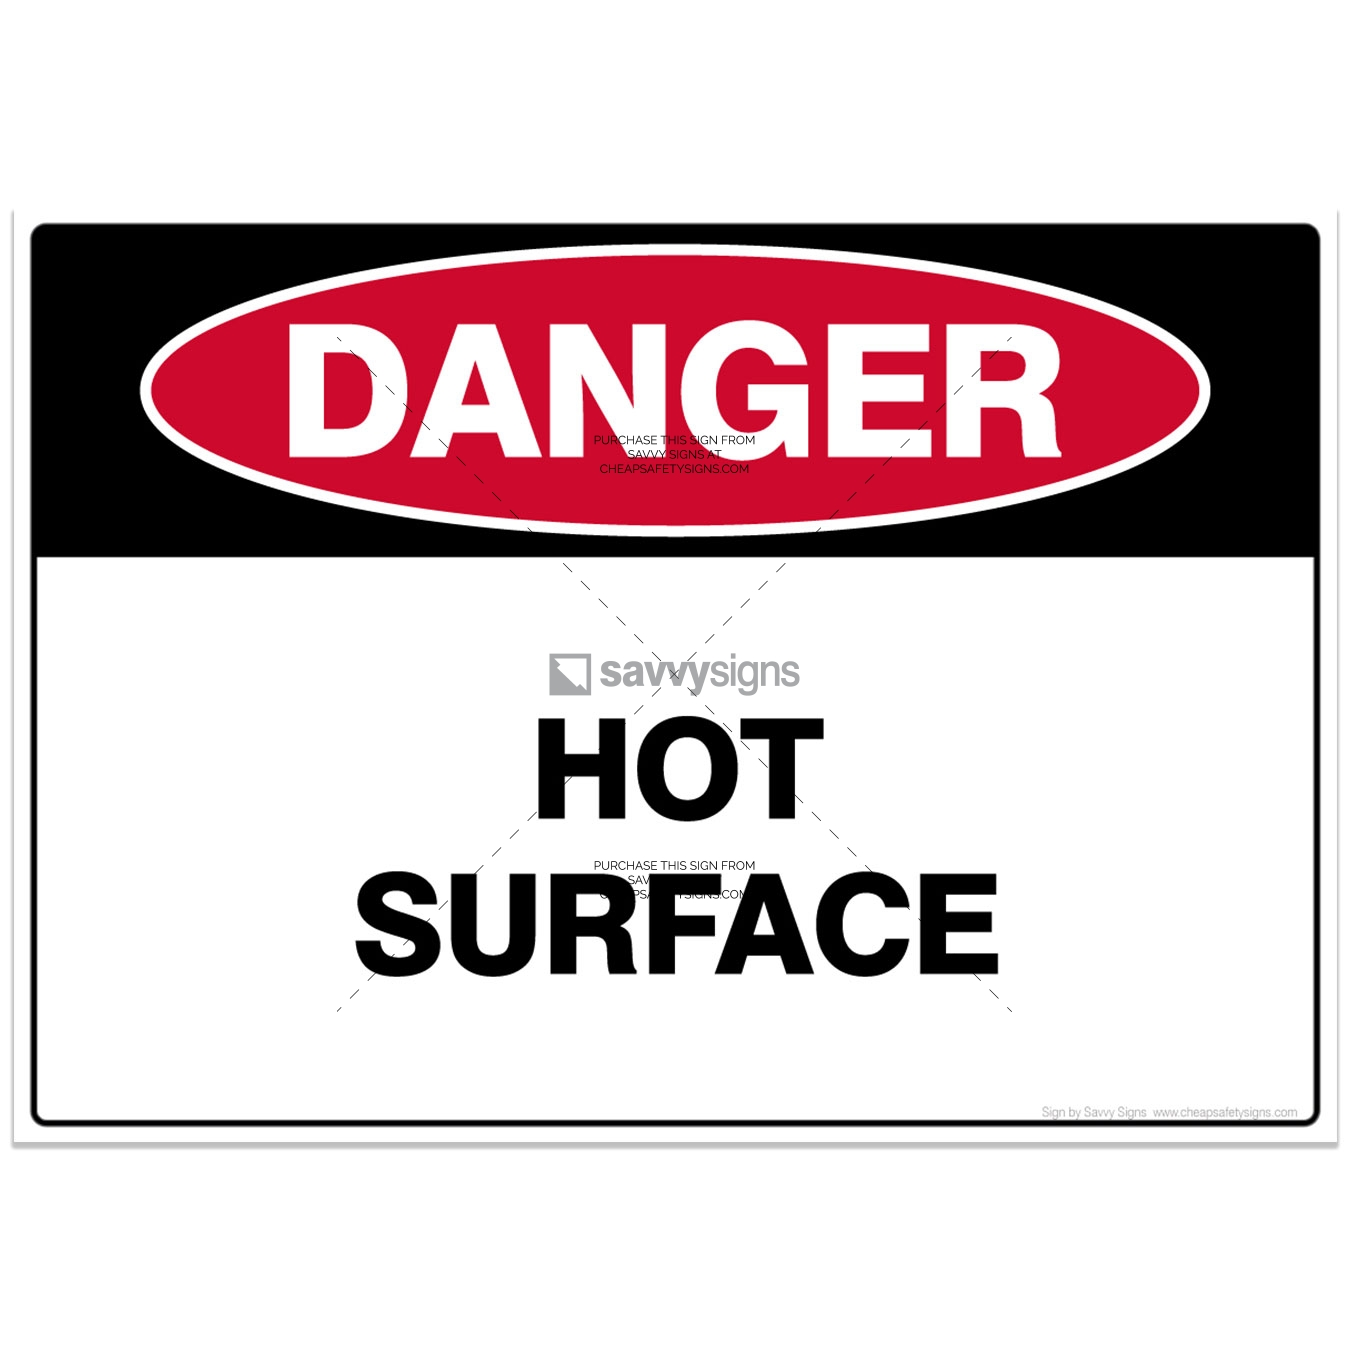 SSDAN3051-DANGER-Workplace-Safety-Signs_Savvy-Signs_v4.1